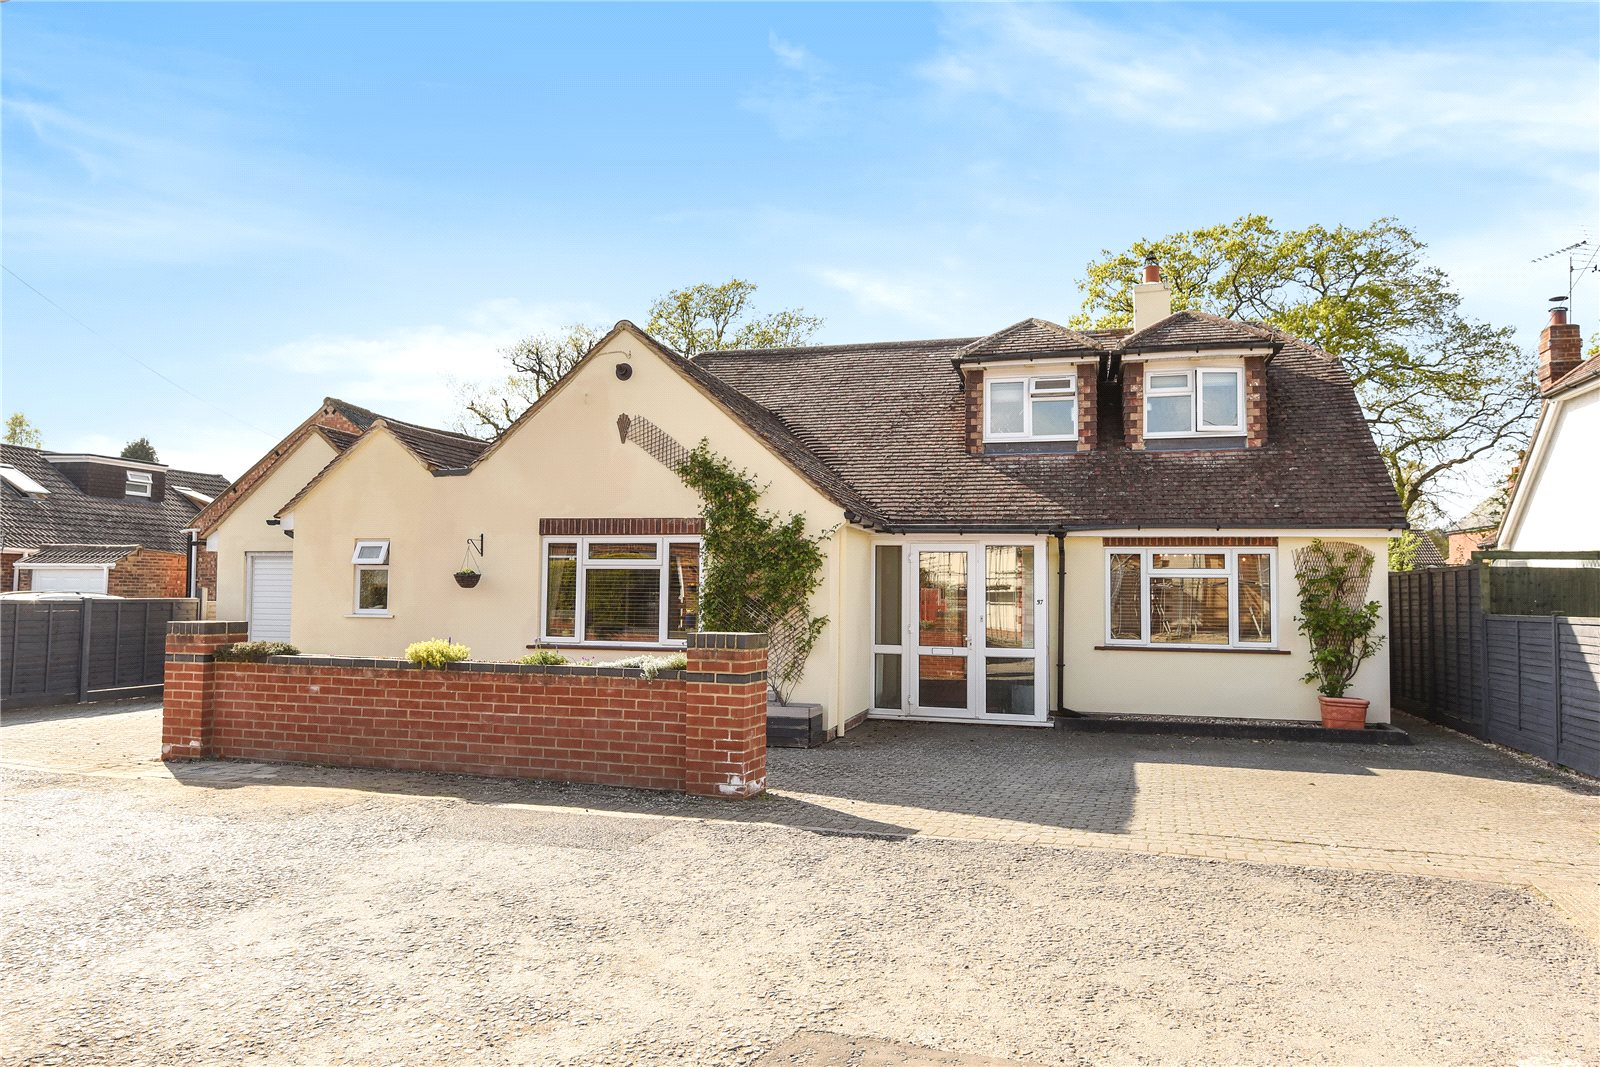 5 Bedrooms Detached House for sale in Brookside, Sandhurst, Berkshire, GU47